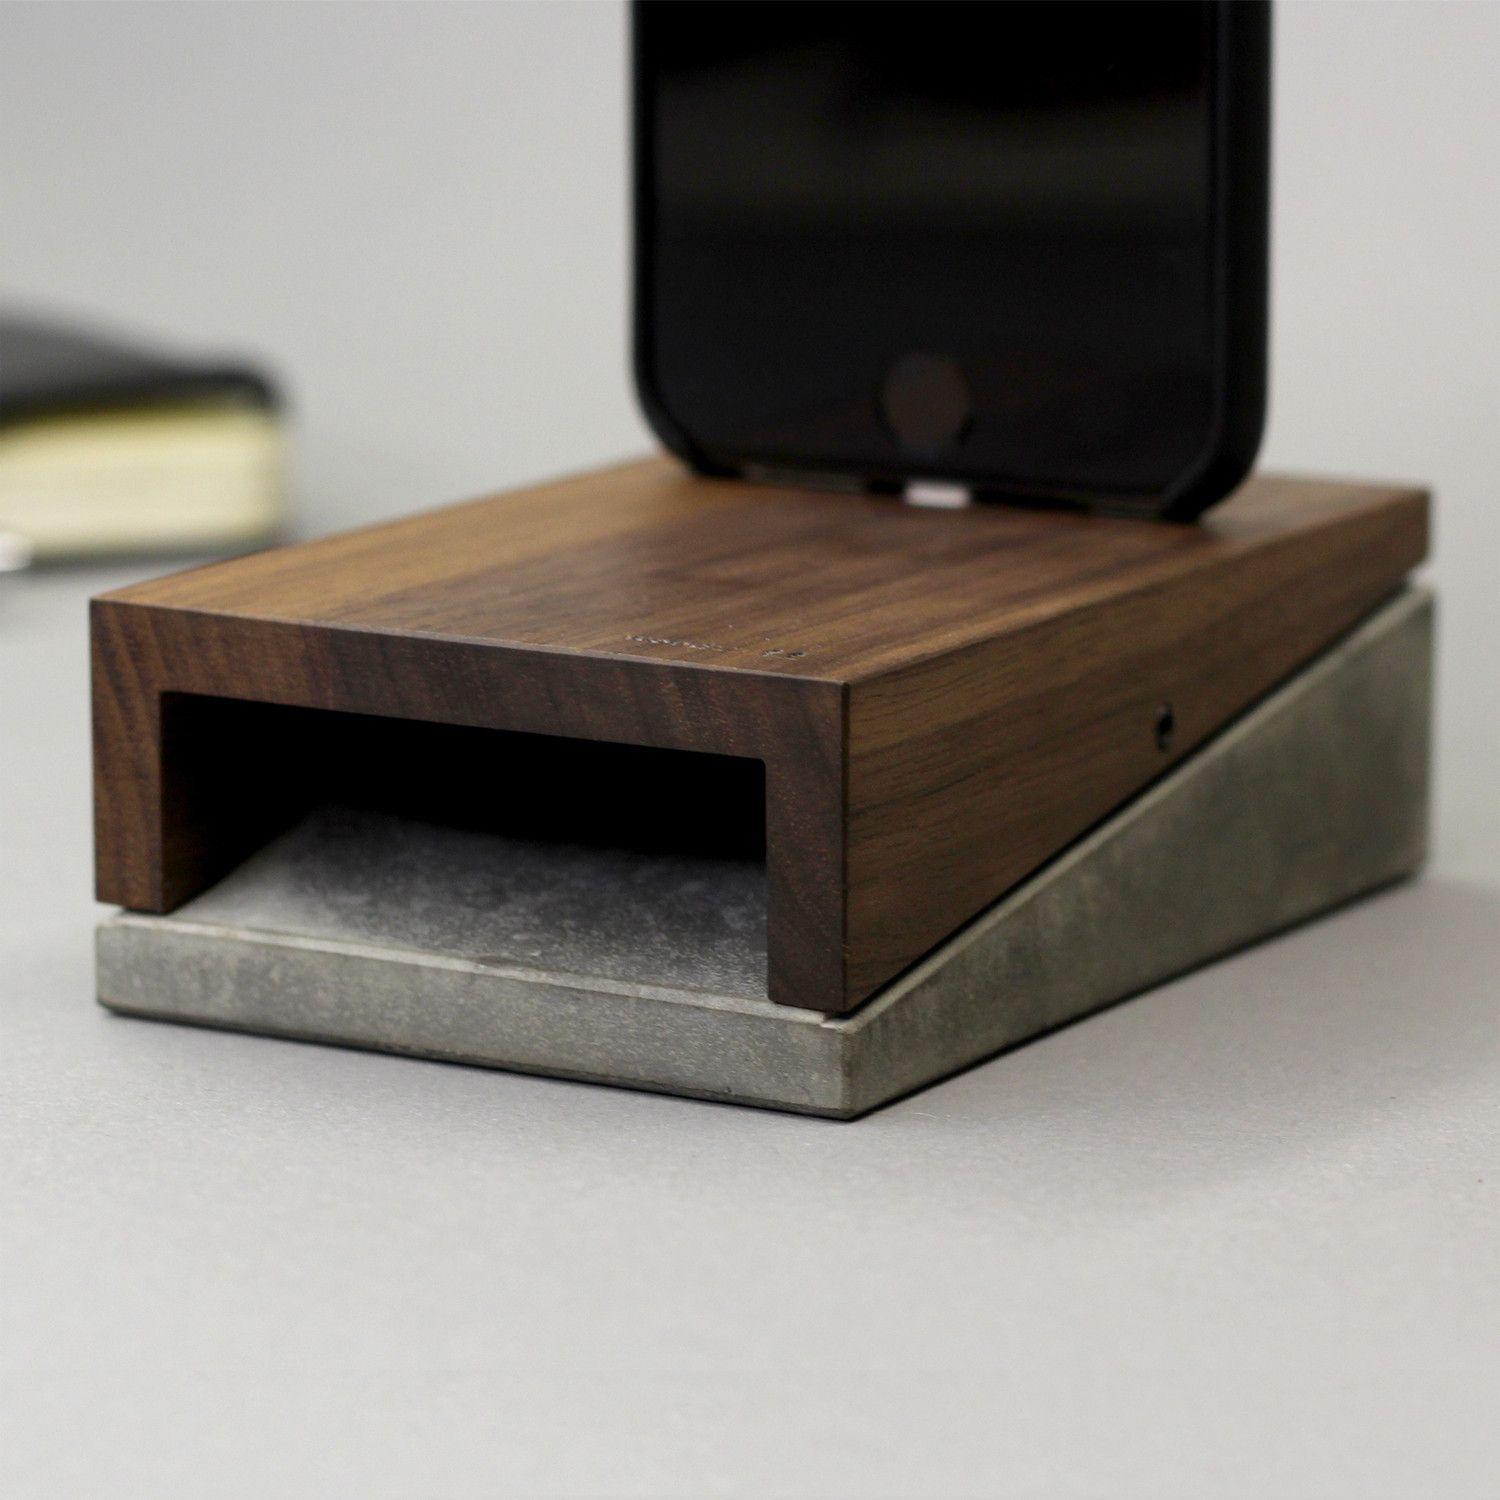 Dock Furniture Ideas Mobi Iphone Dock Amplifies Sound Products I Love